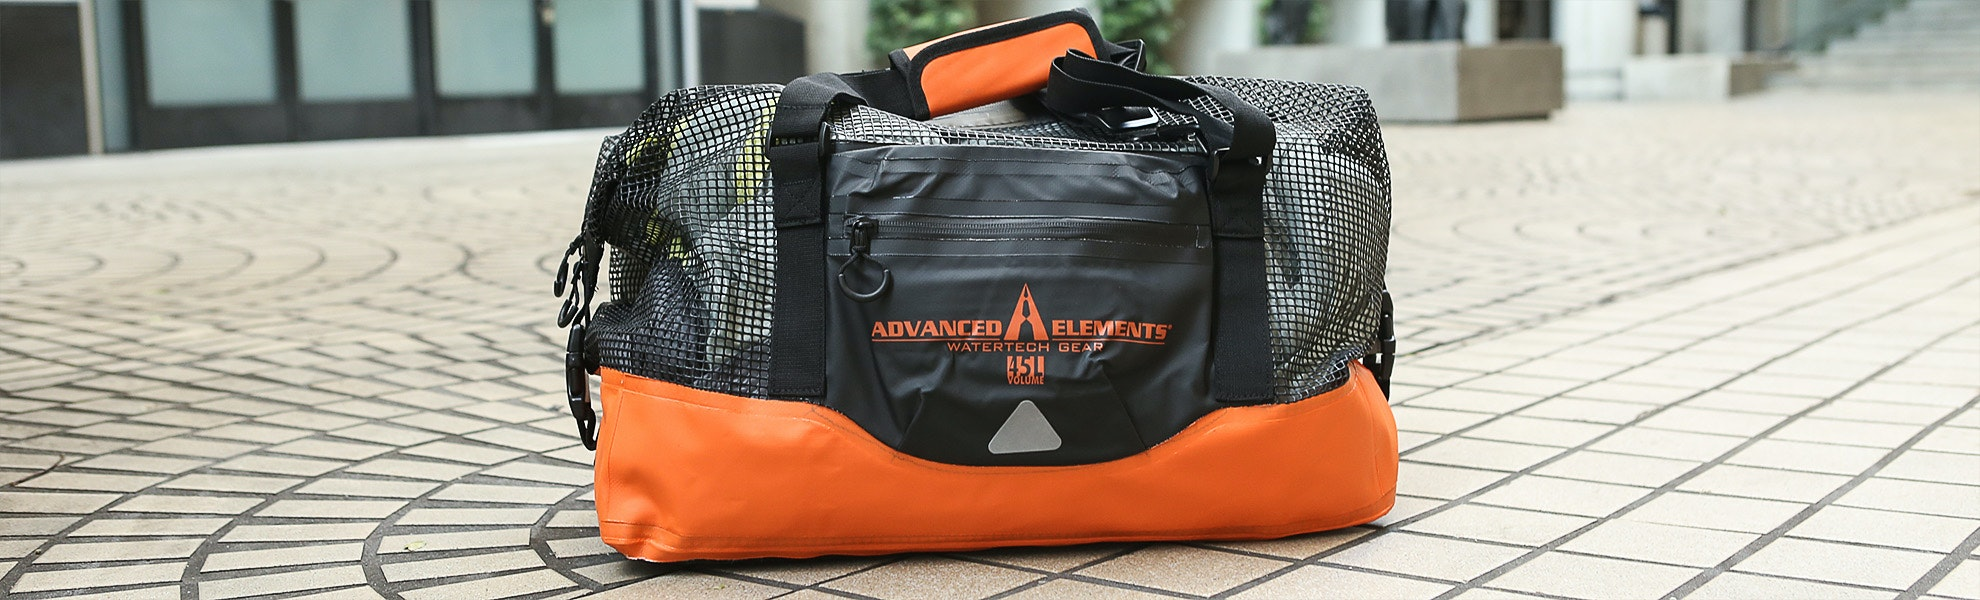 Advanced Elements Funk Bag